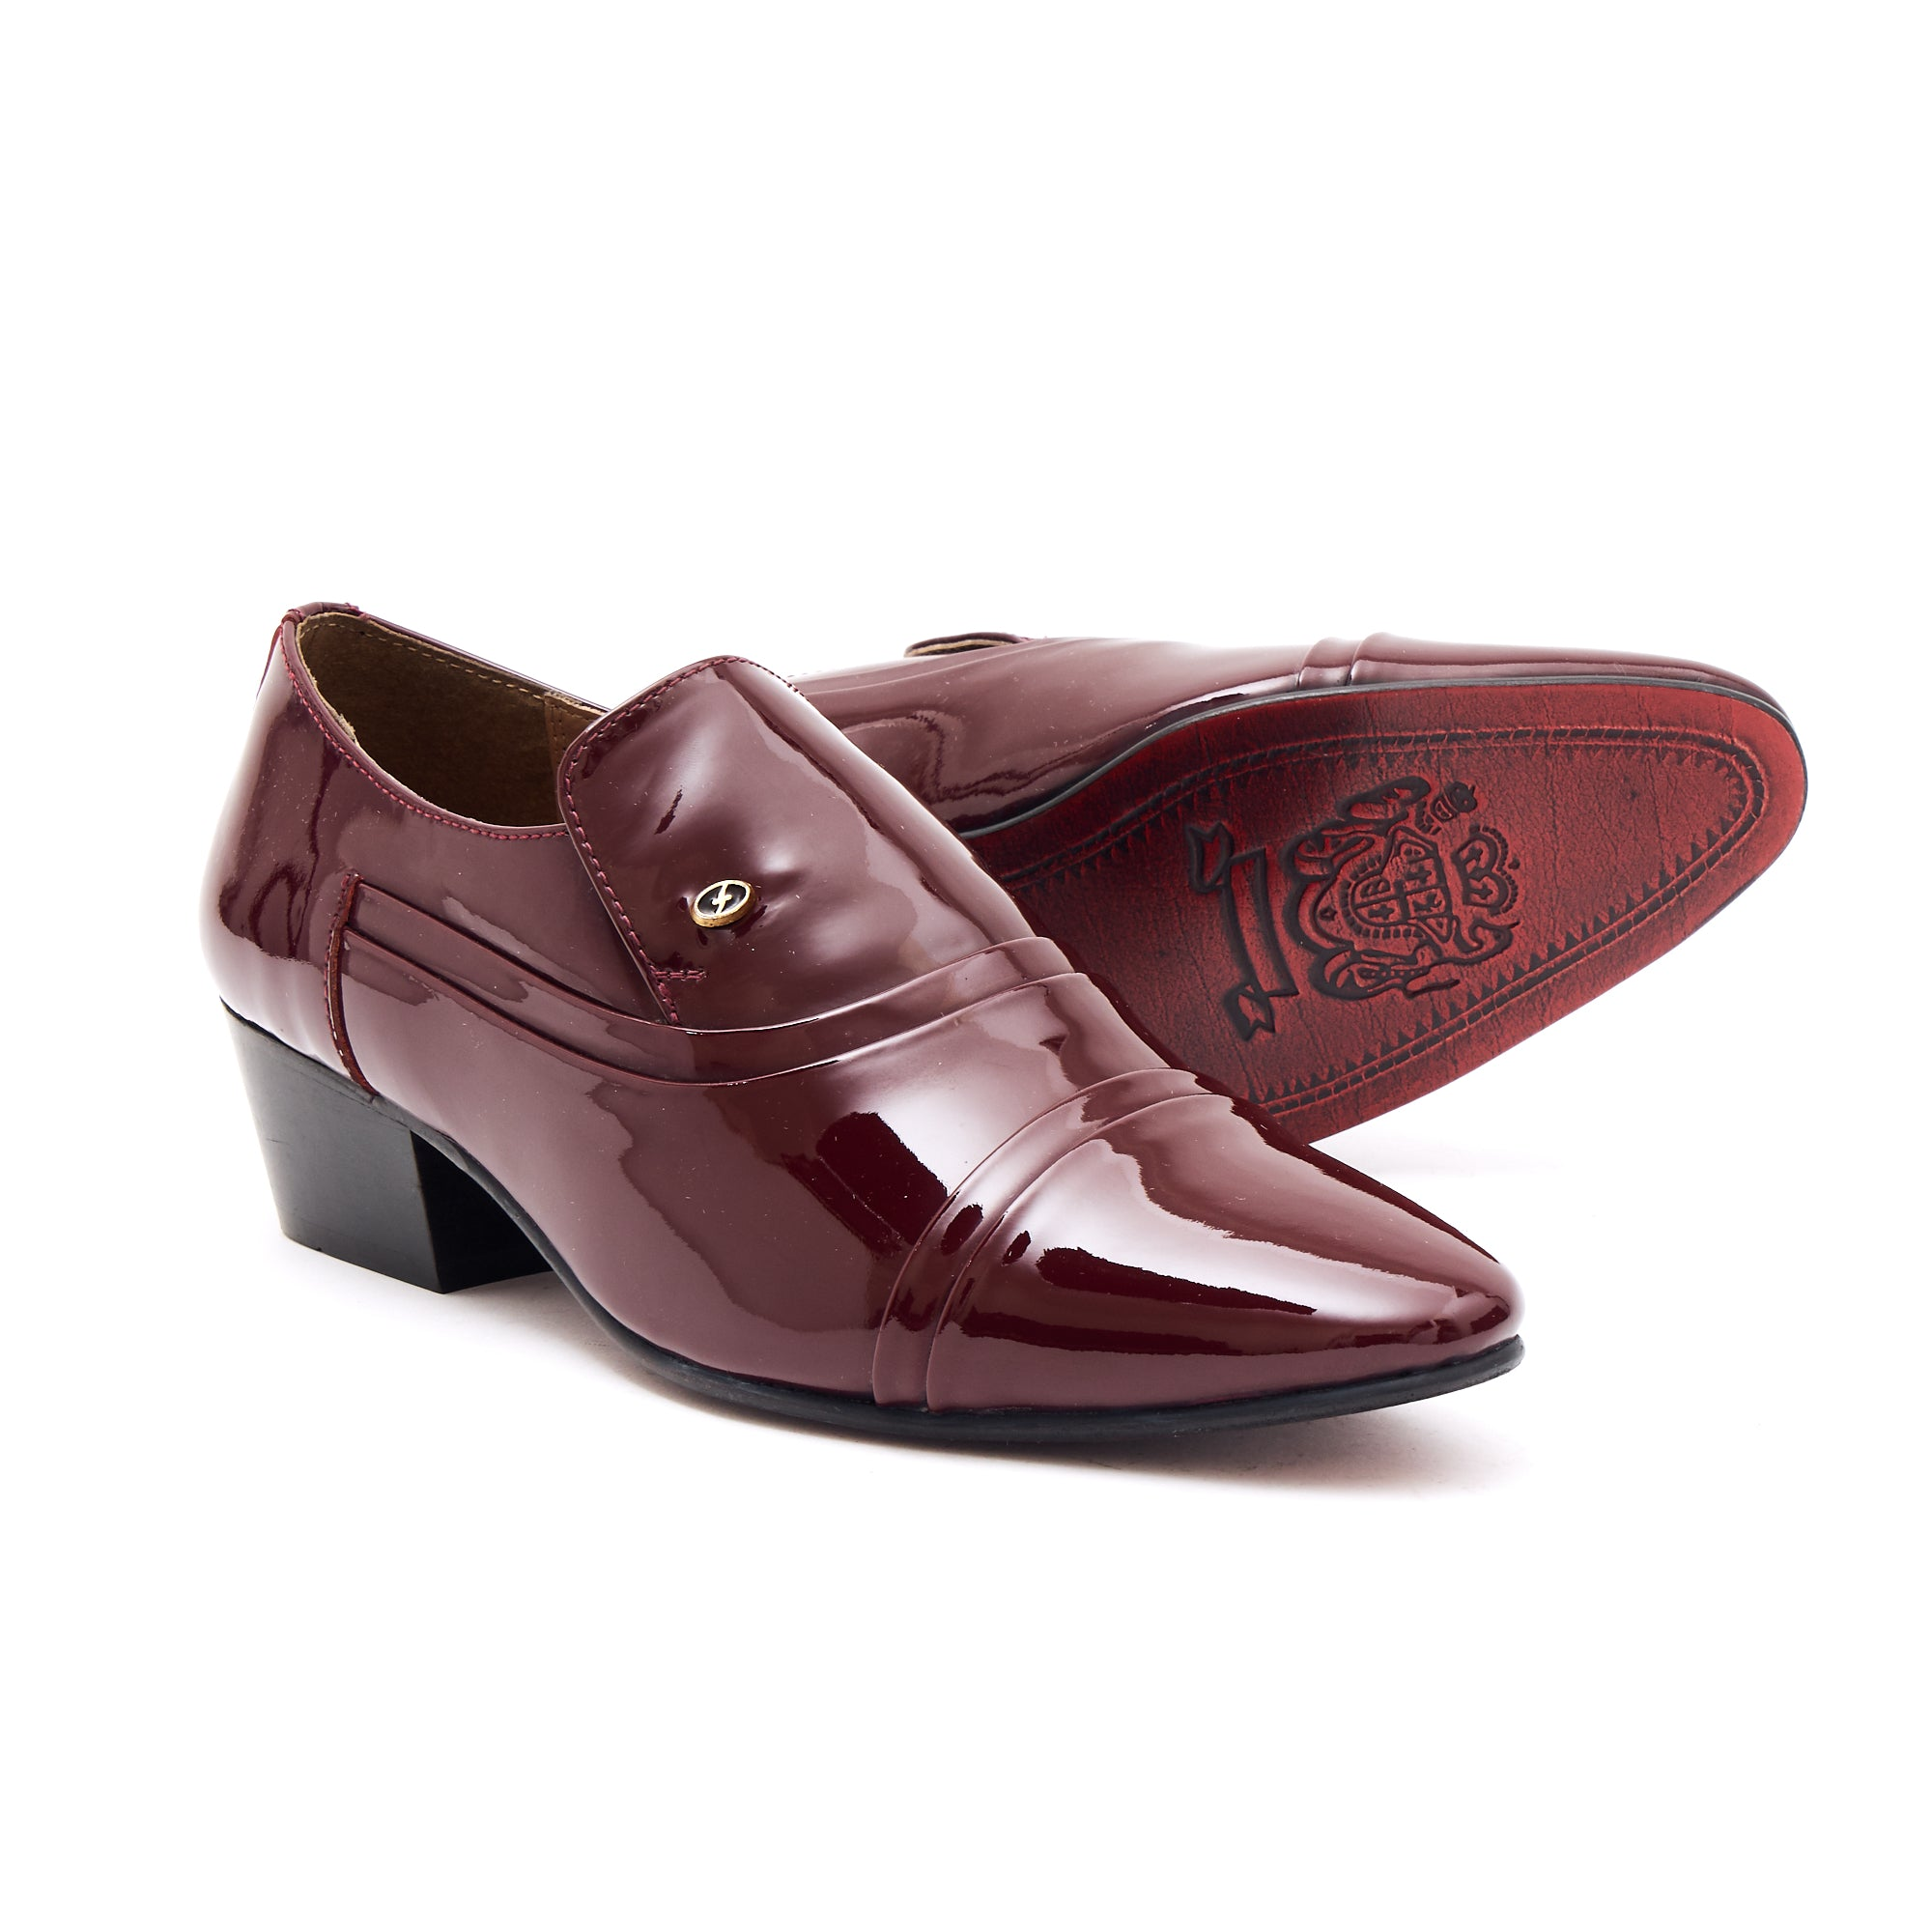 Mens Leather Cuban Heel Patent Shoes - 26287 Burgundy